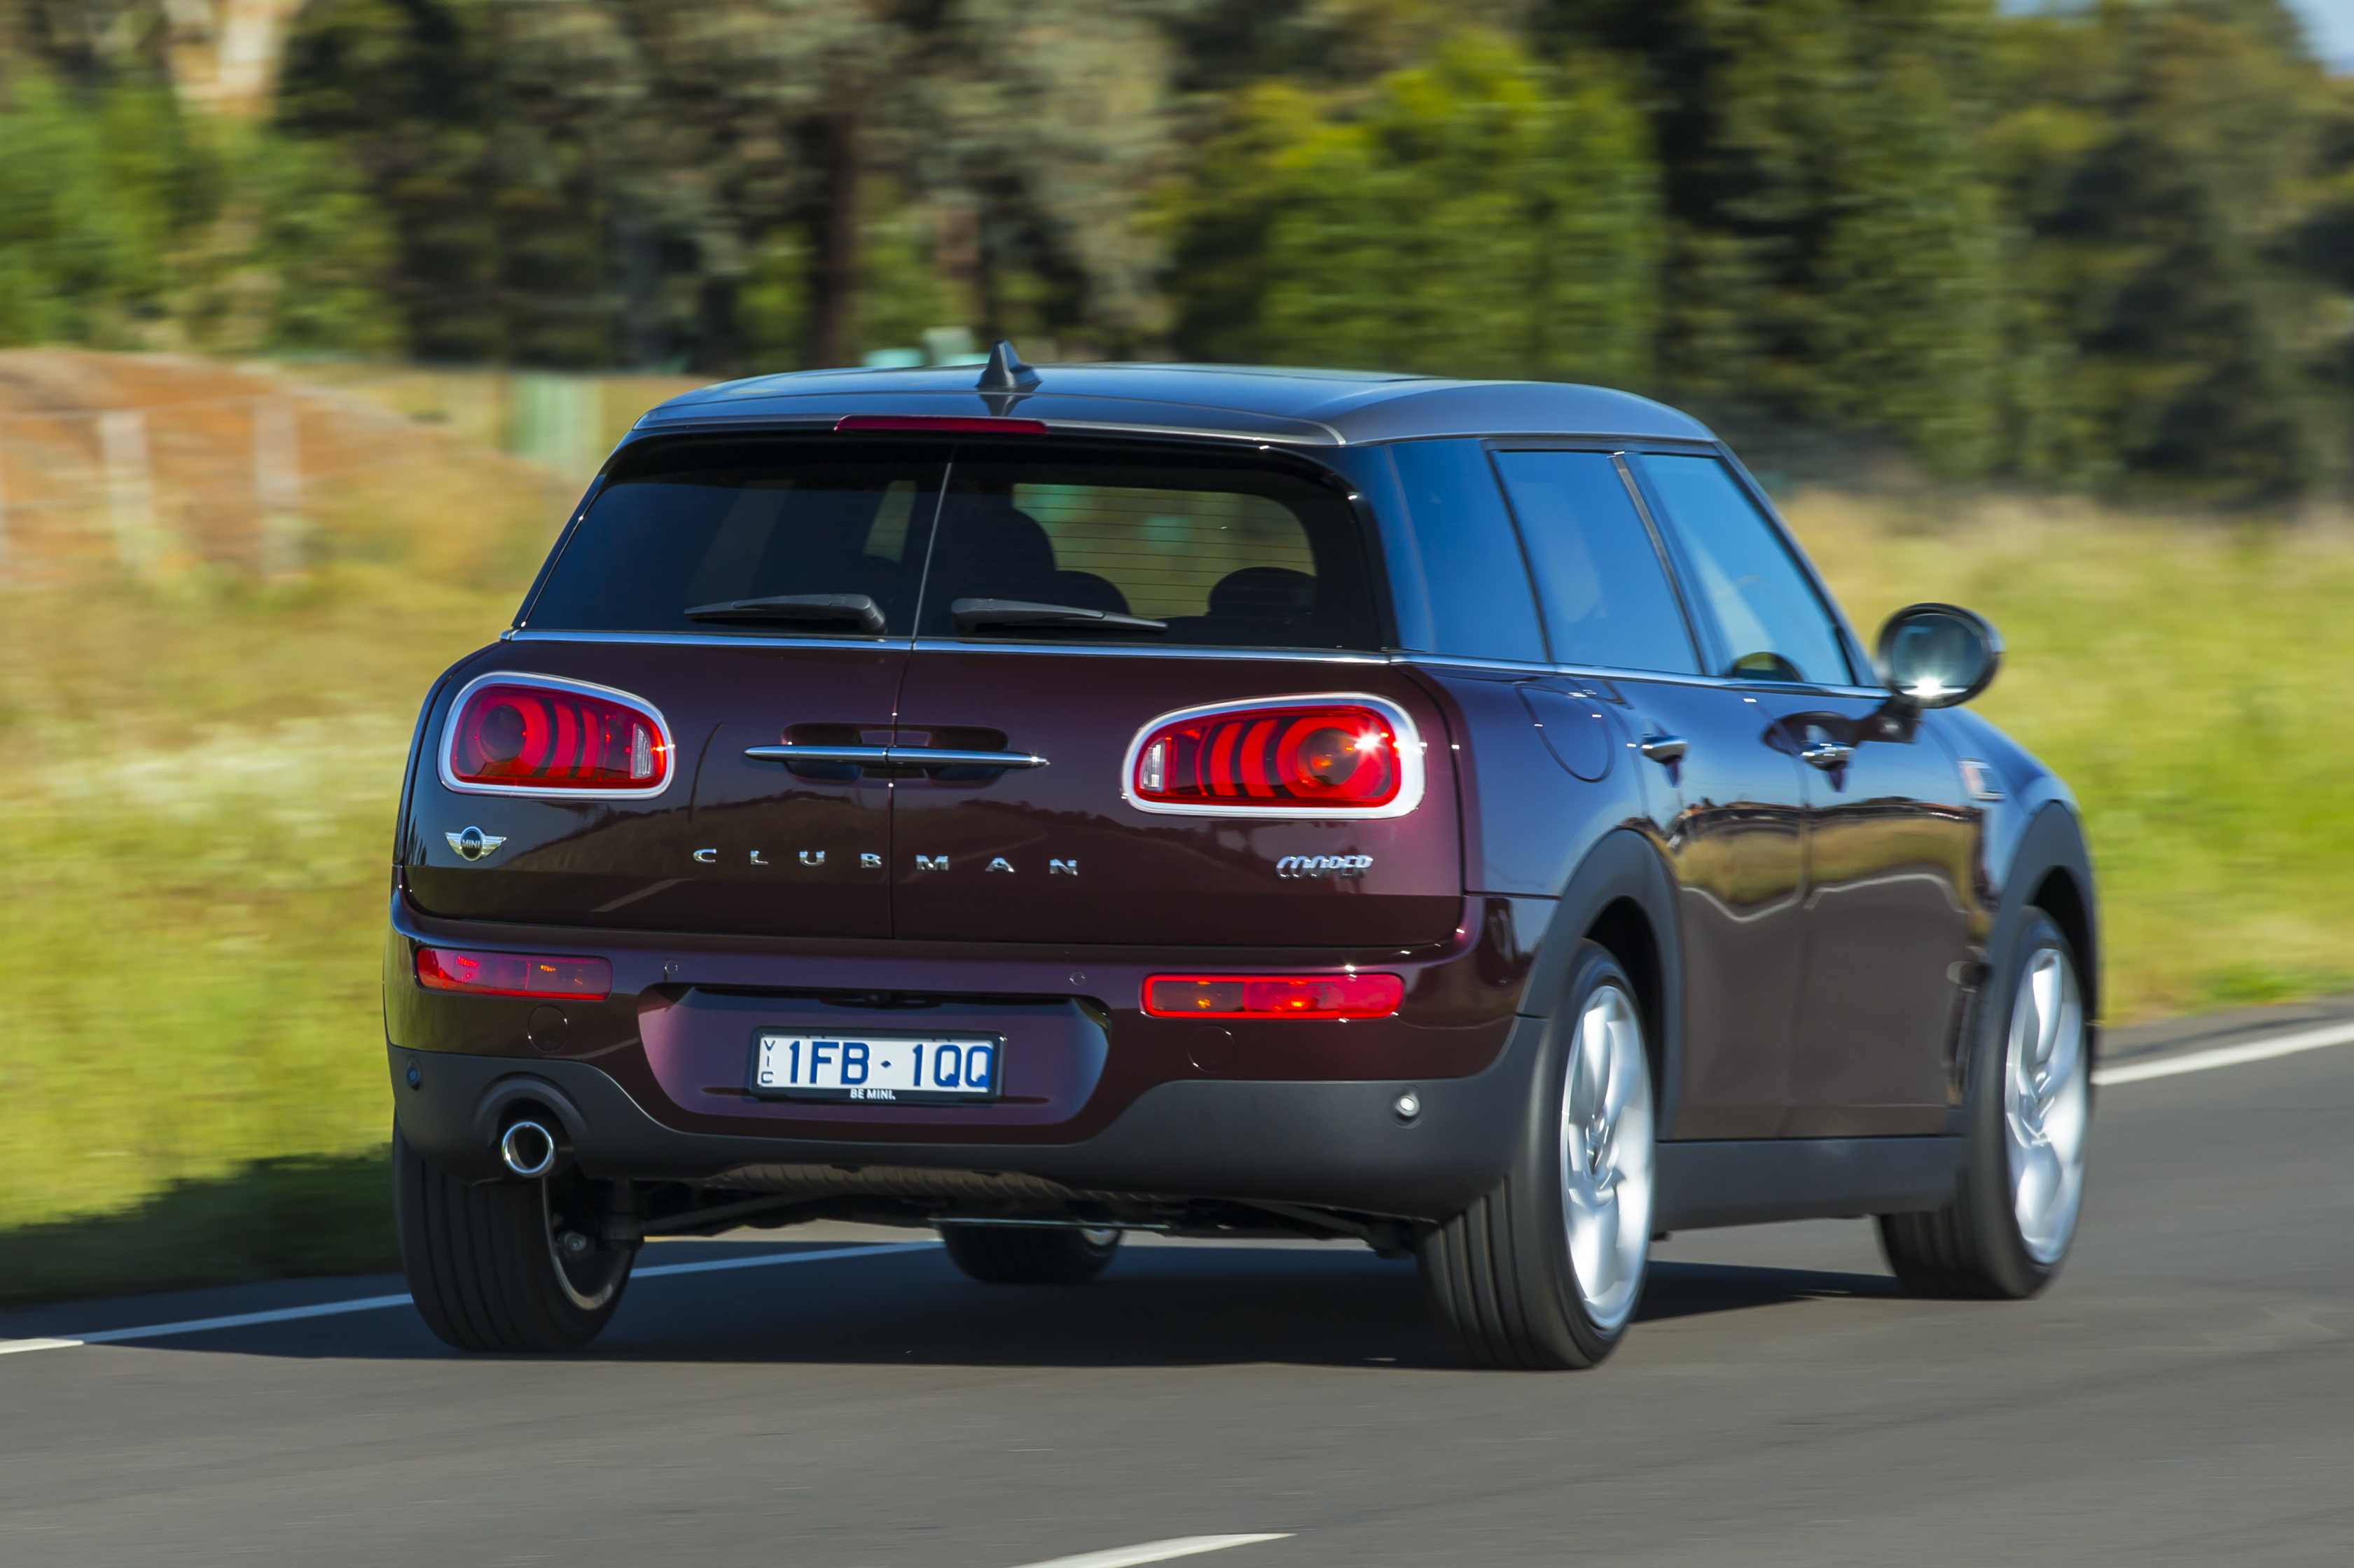 MINI Cooper S Clubman hd photo